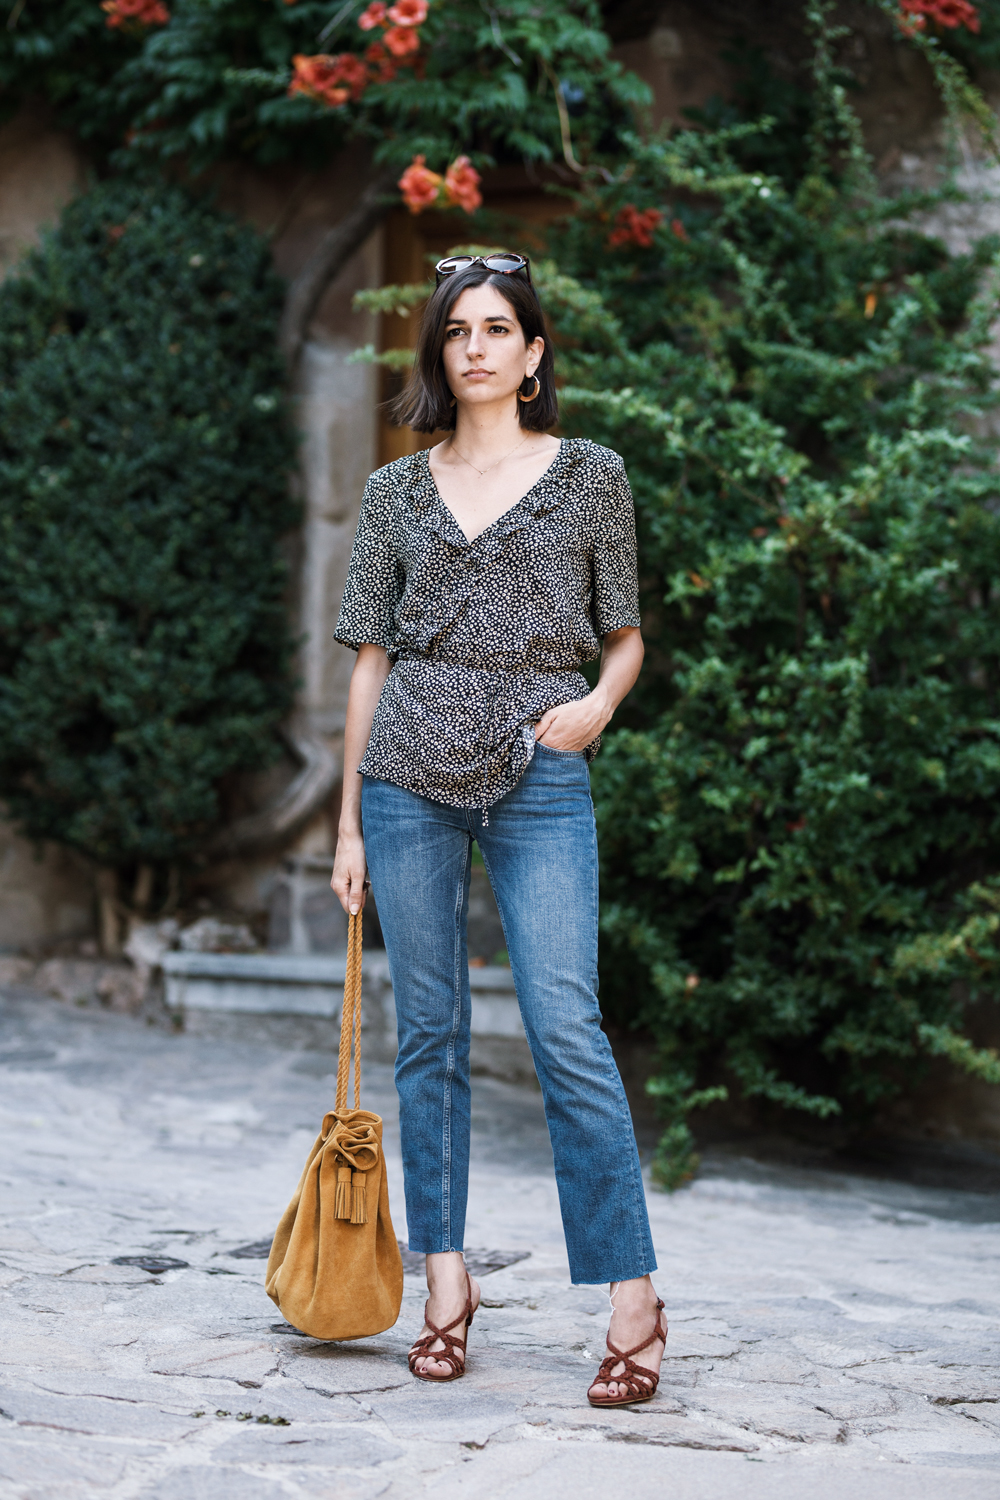 Summer outfit: The best way to wear a casual wrap shirt